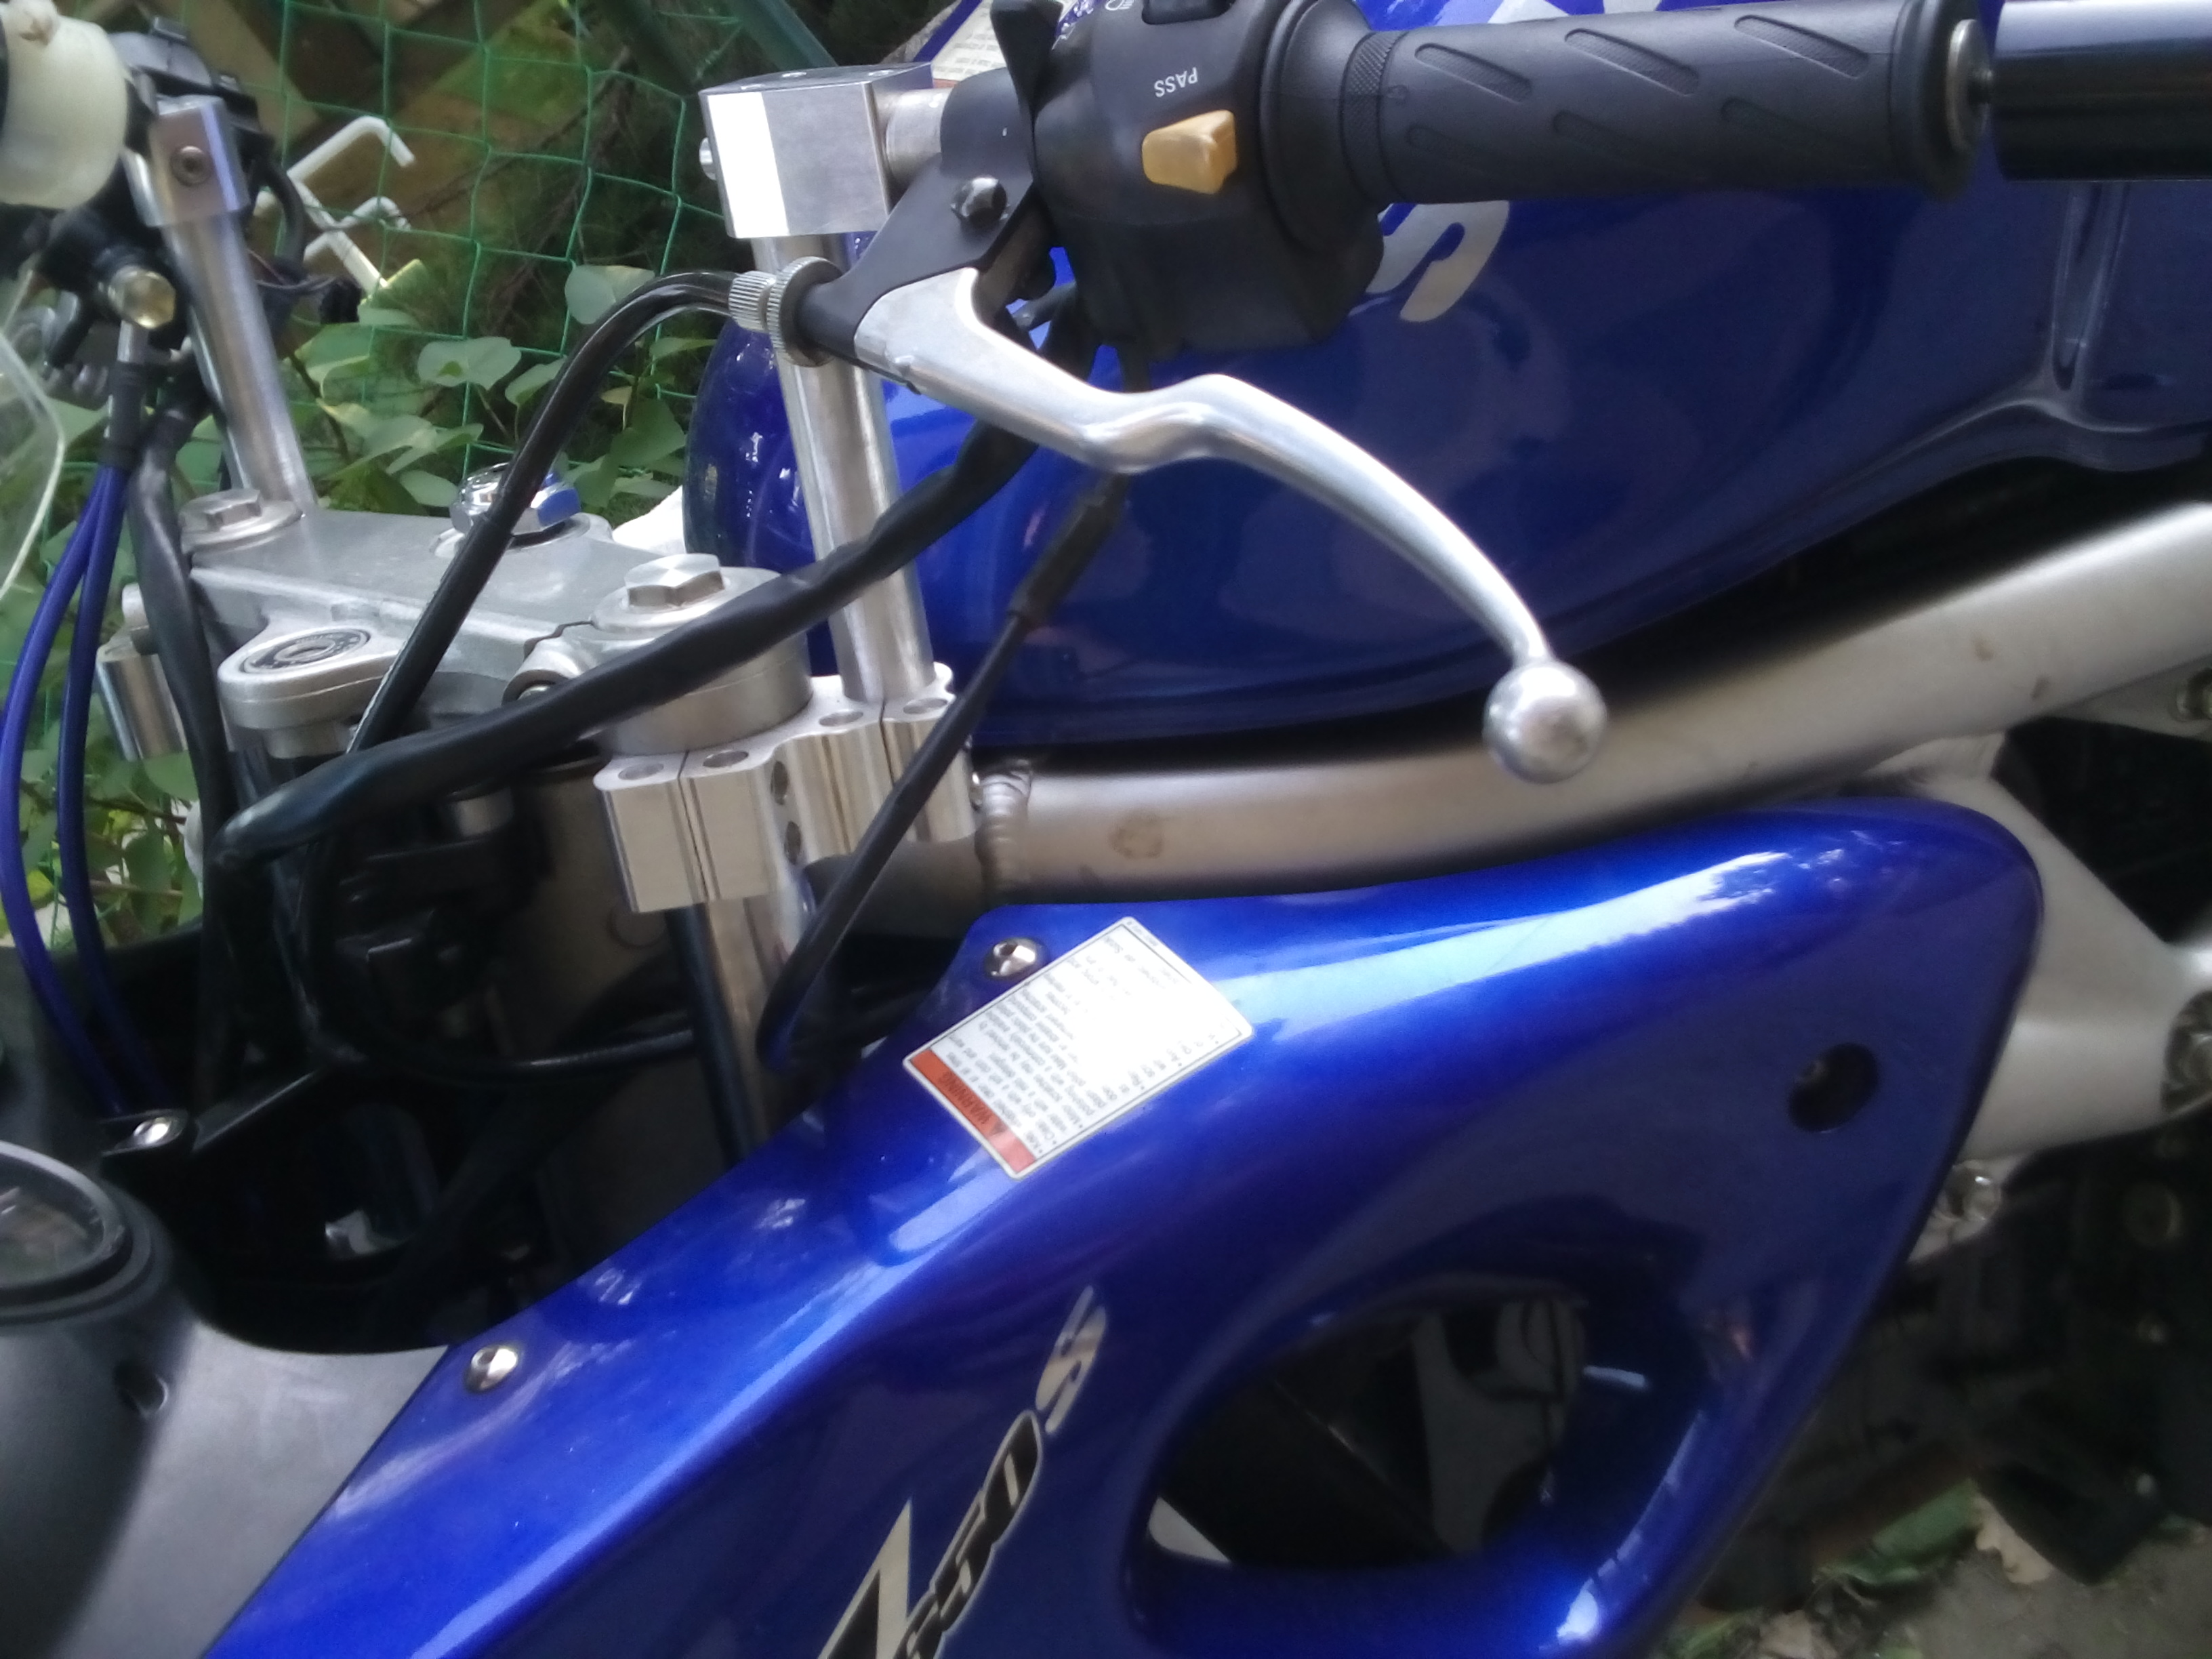 Picture of SV 650 S Handlebar Conversion